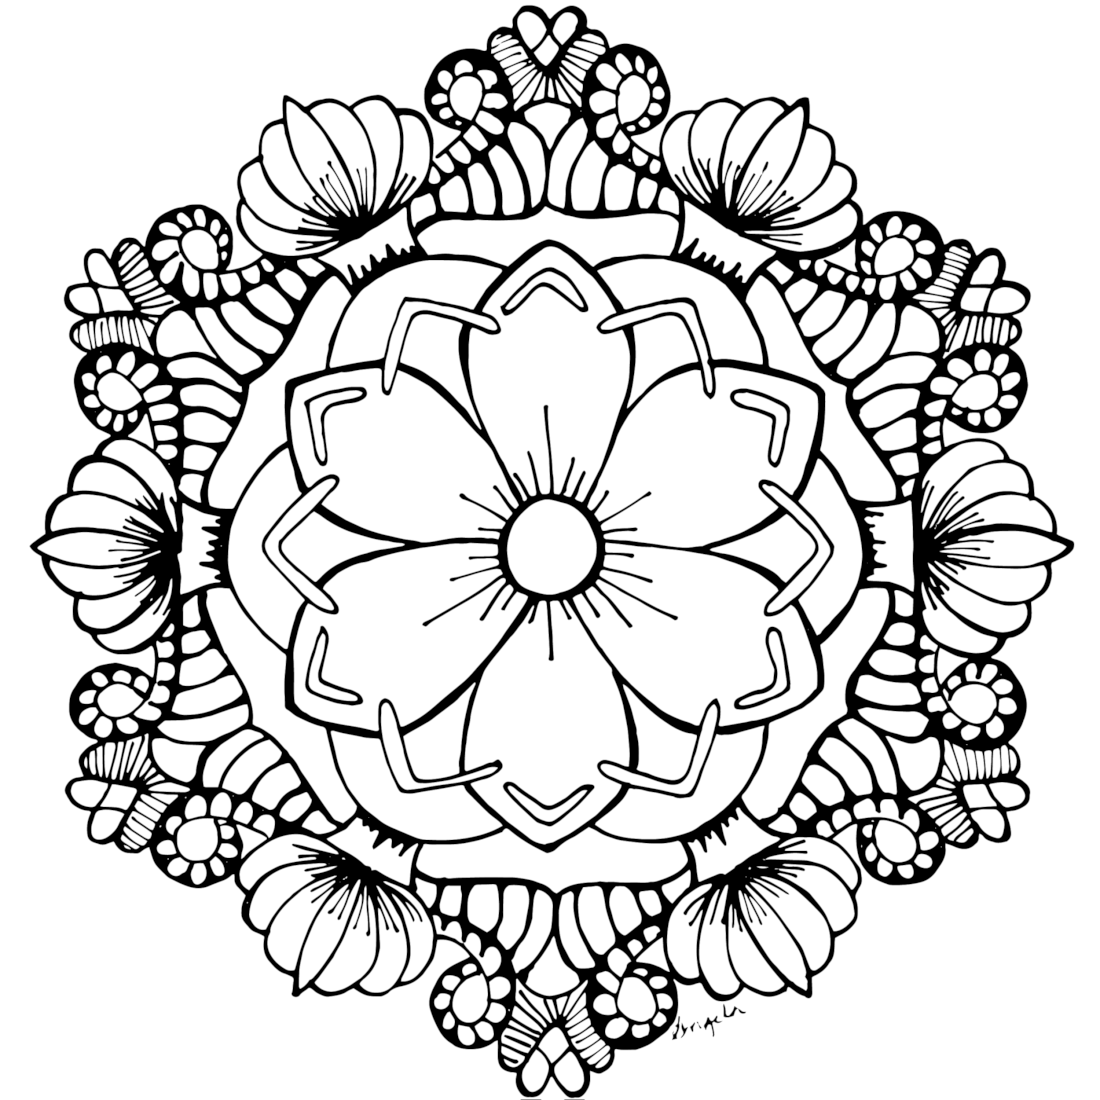 printable coloring pages for adults stress anti stress jennifer 6 anti stress adult coloring pages adults stress pages for printable coloring